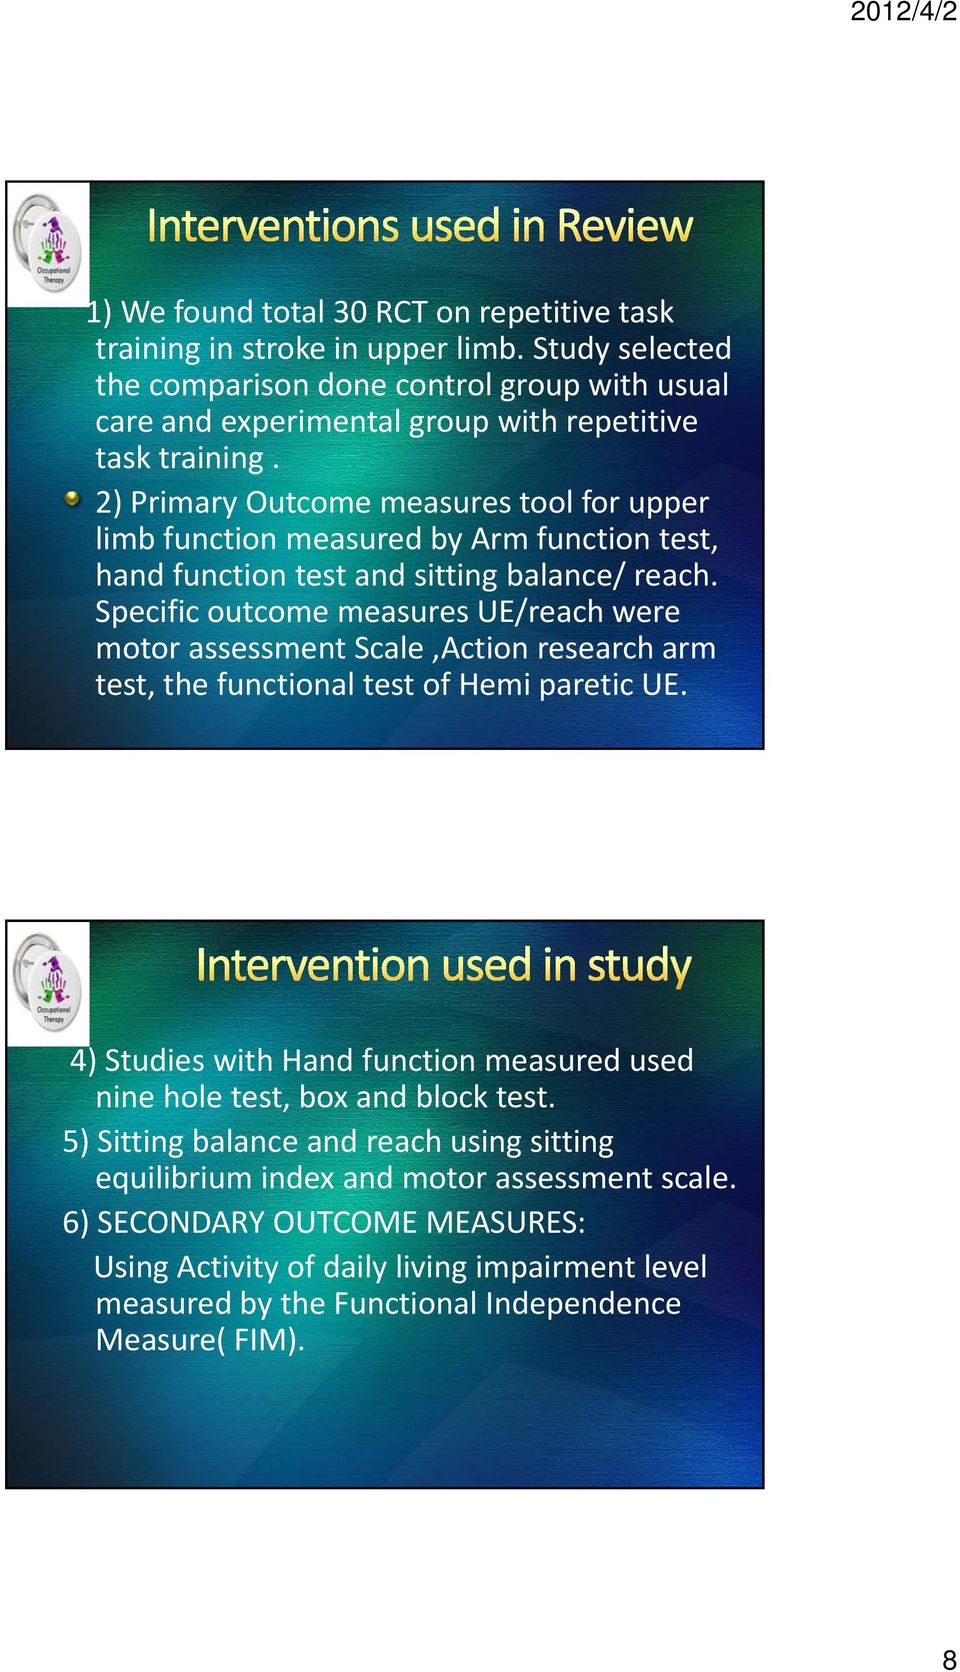 2) Primary Outcome measures tool for upper limb function measured by Arm function test, hand function test and sitting balance/ reach.